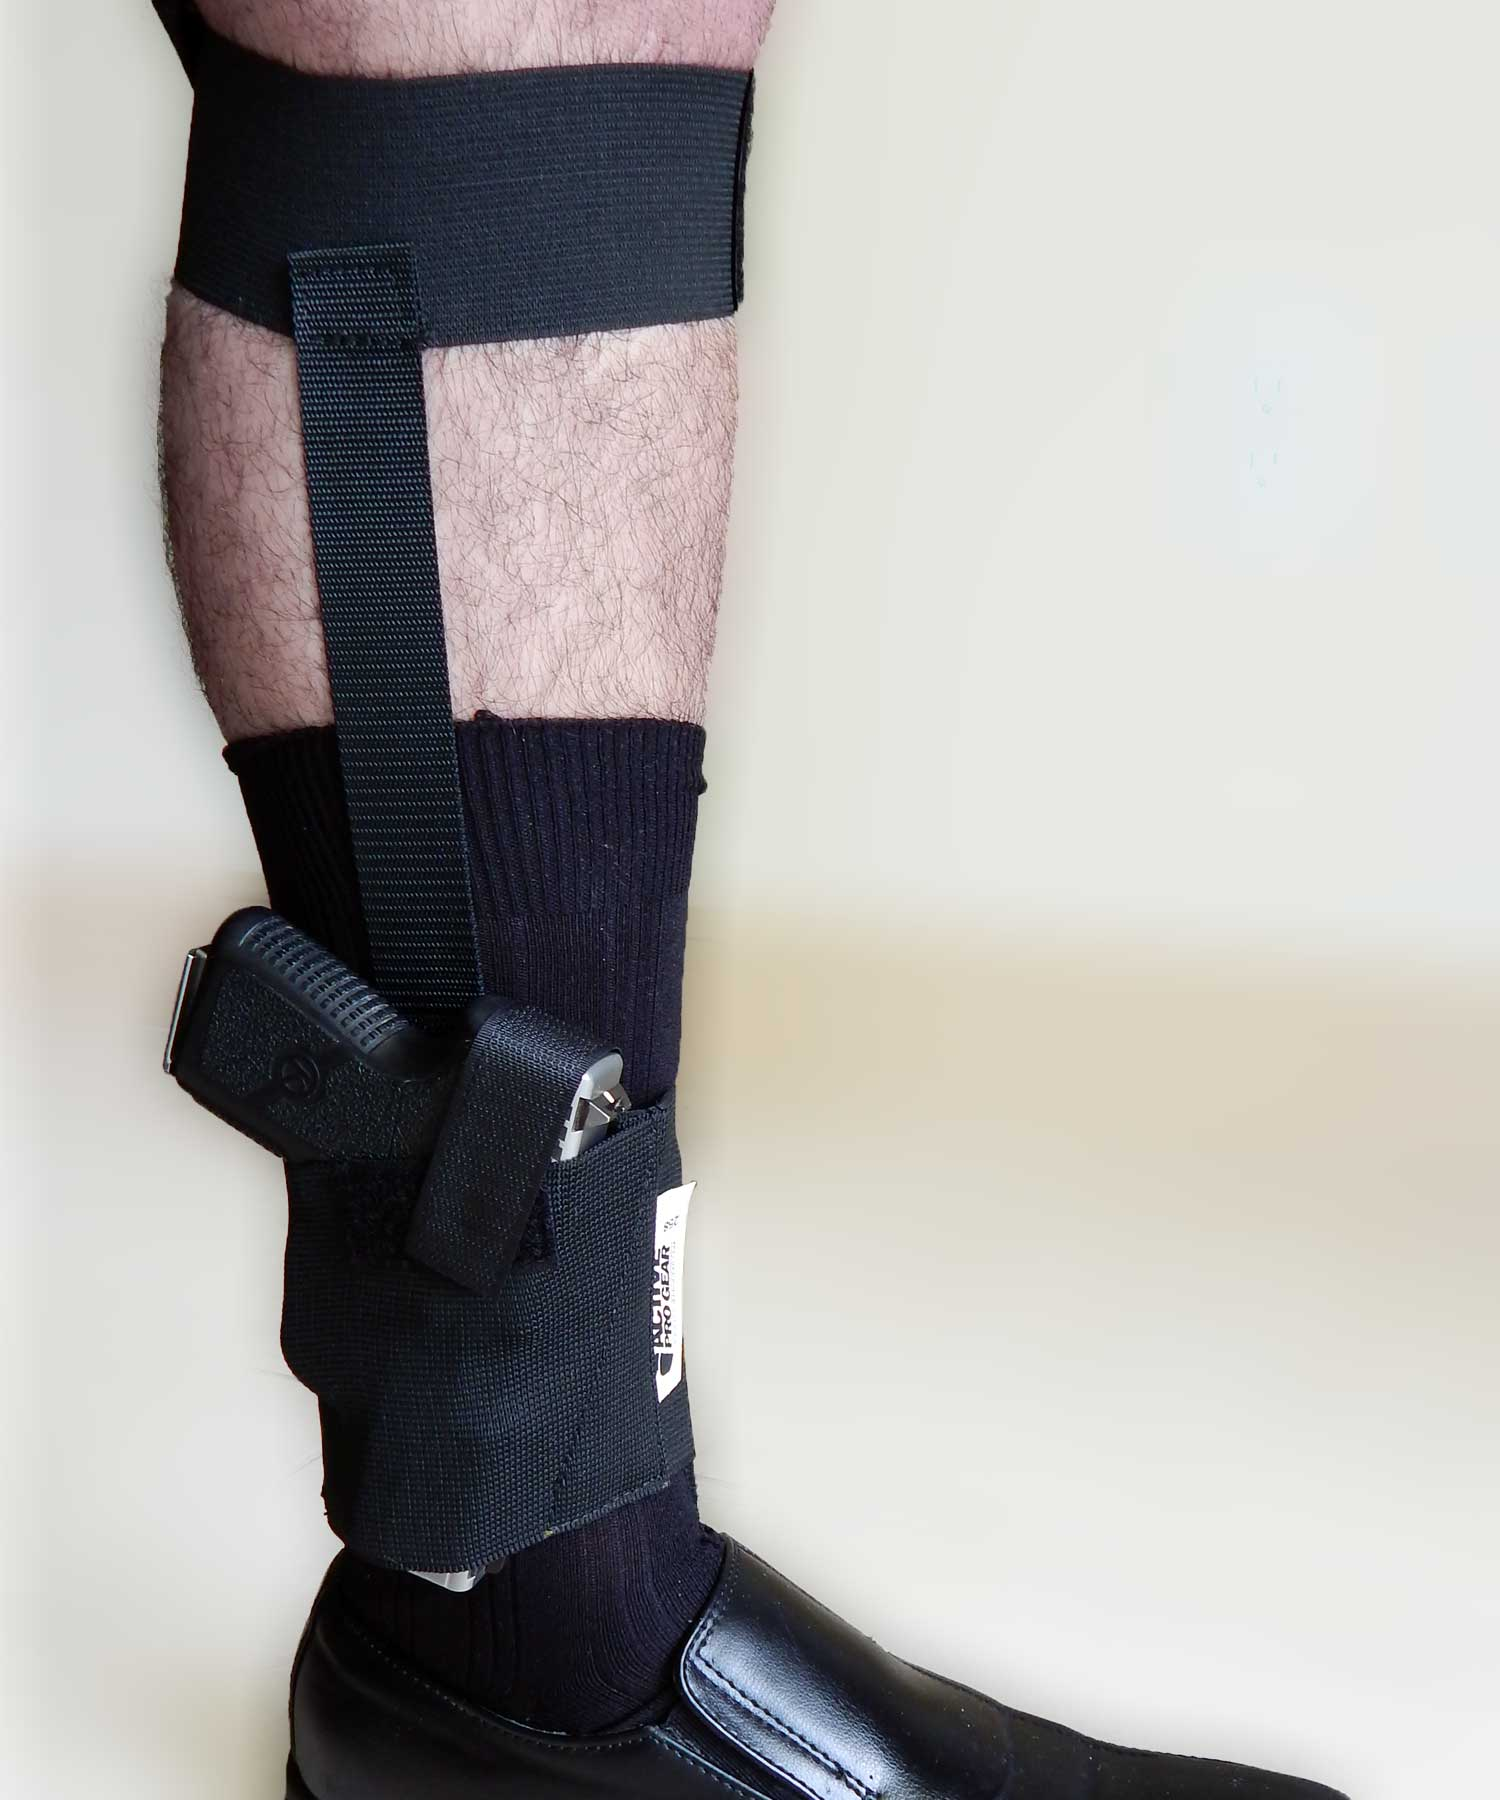 Ankle Concealment Holster  Concealed Carry with Comfort